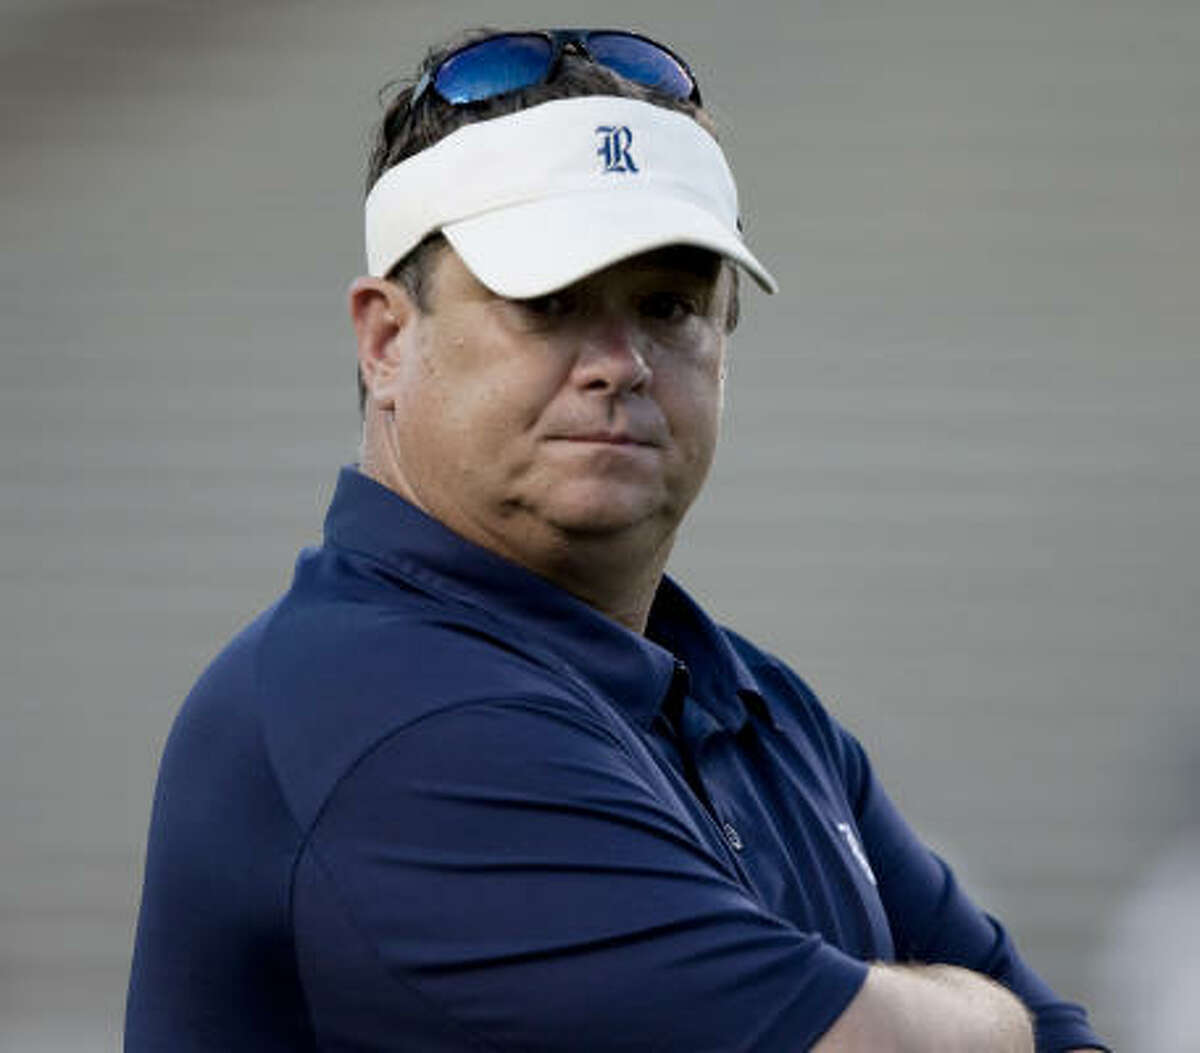 Bailiff's Rice Owls will seek their first victory of the season as they host Vanderbilt Saturday.